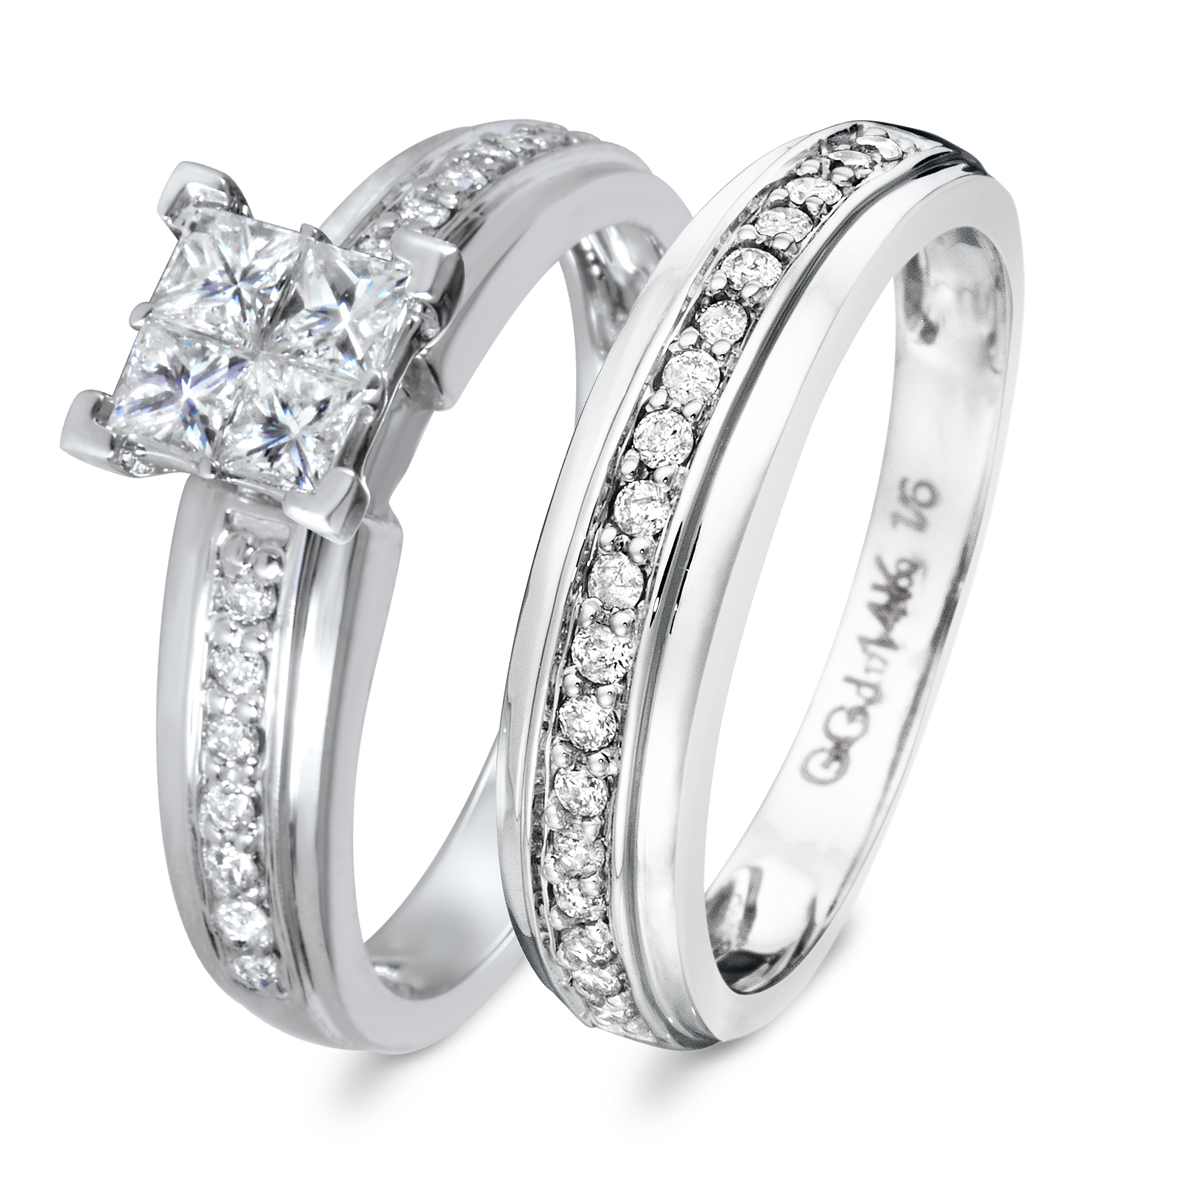 7/8 CT. T.W. Diamond Women's Bridal Wedding Ring Set 10K White Gold